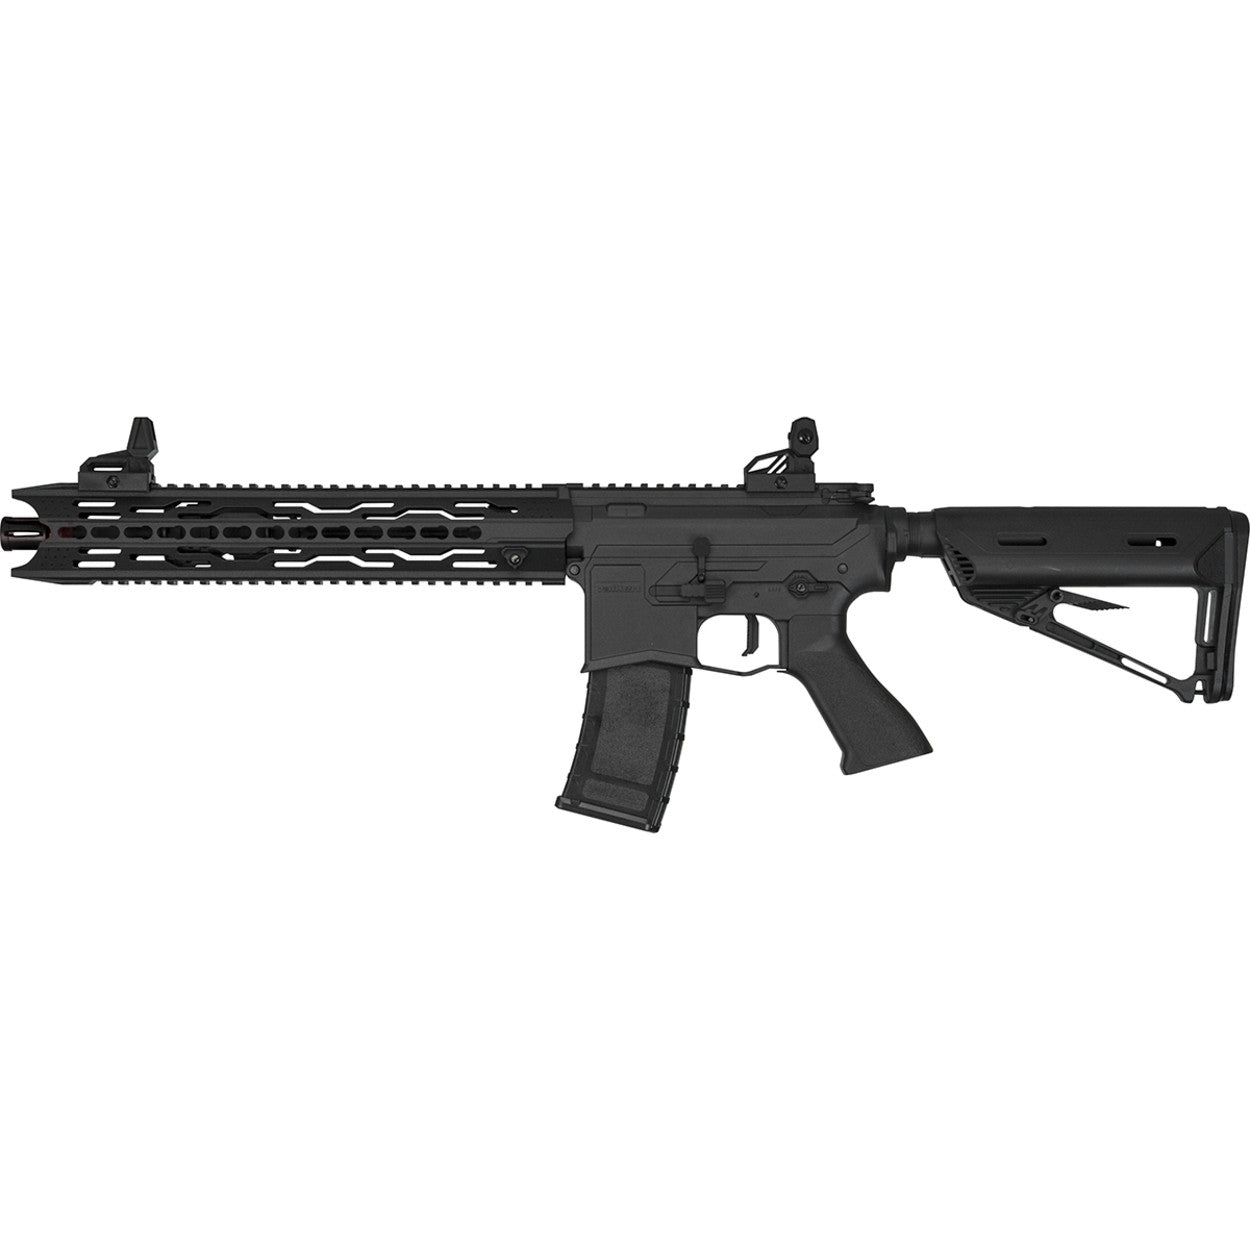 Valken AEG ASL Battle Machine - TRG